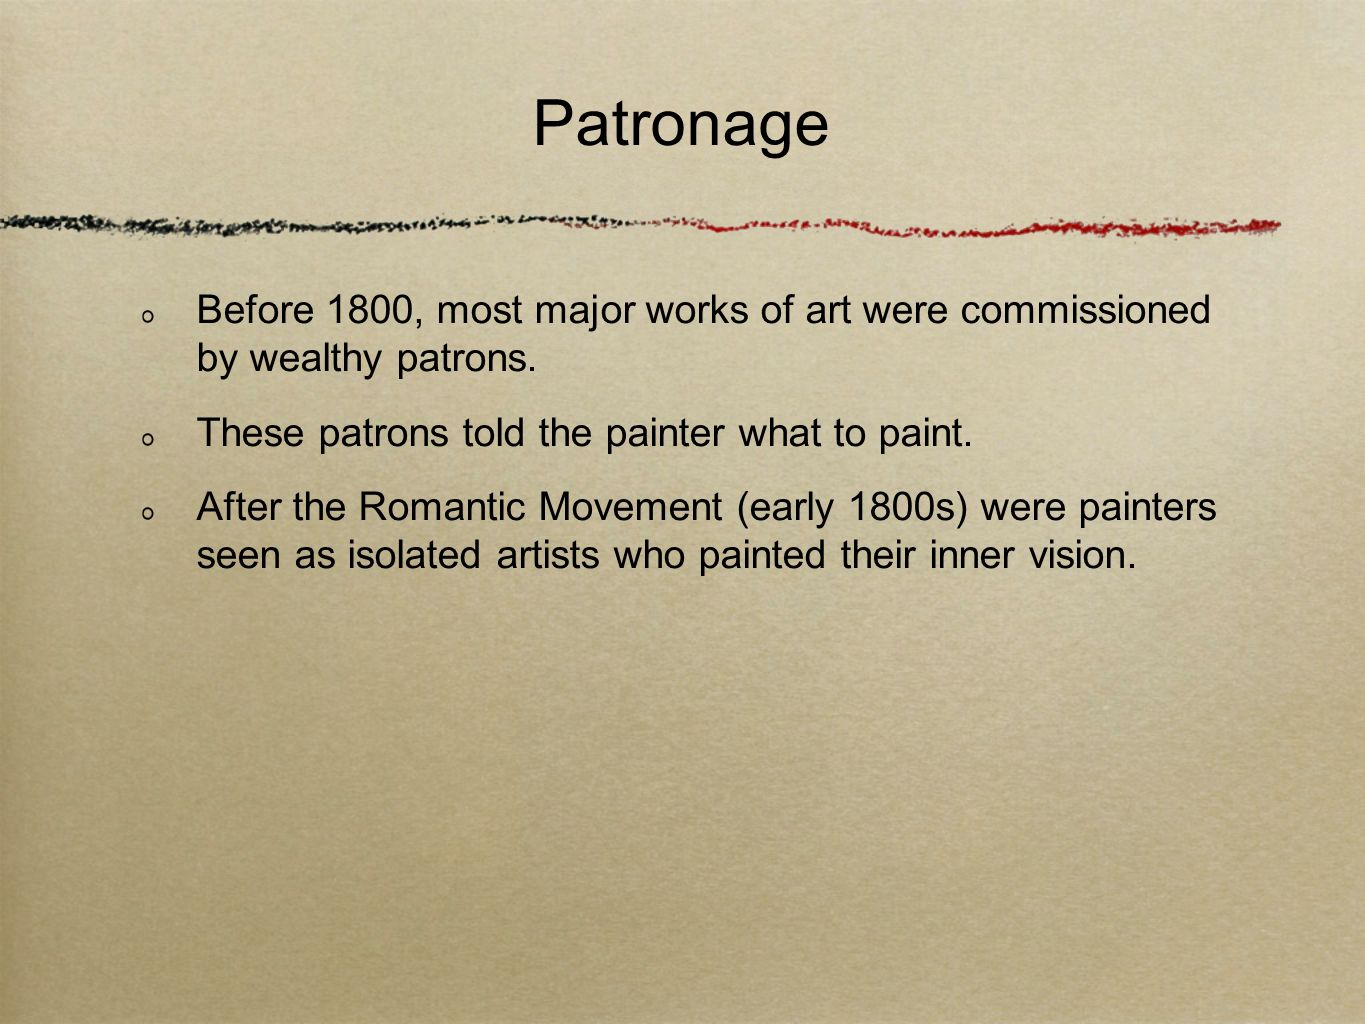 Patronage Before 1800, most major works of art were commissioned by wealthy patrons. These patrons told the painter what to paint.